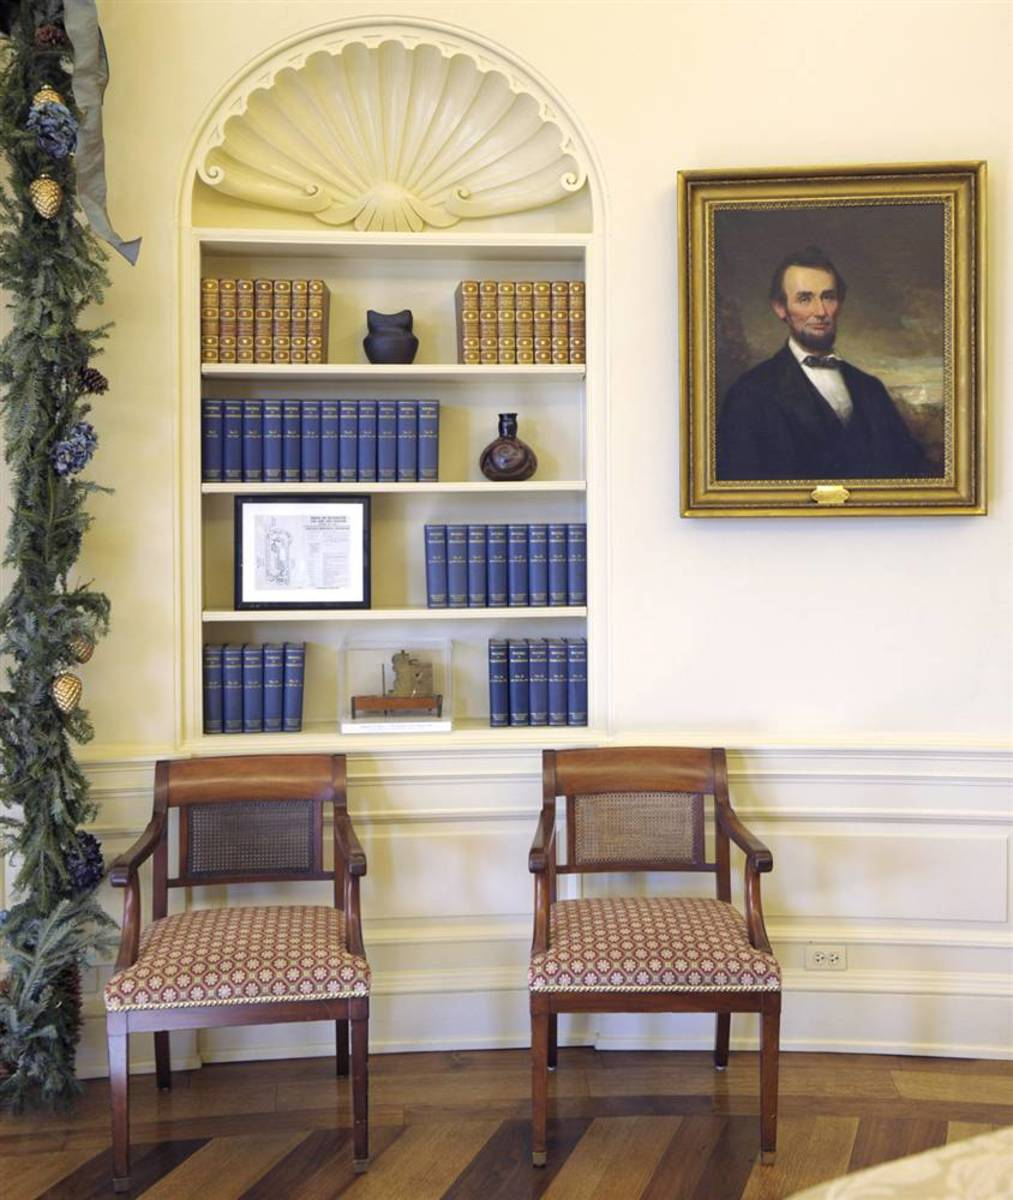 The likeness of Abraham Lincoln graced the Bush Oval Office two times: first, this George Story painting of Abraham Lincoln (above) along with a bust of the 16th president by Augustus St. Gaudens (below).